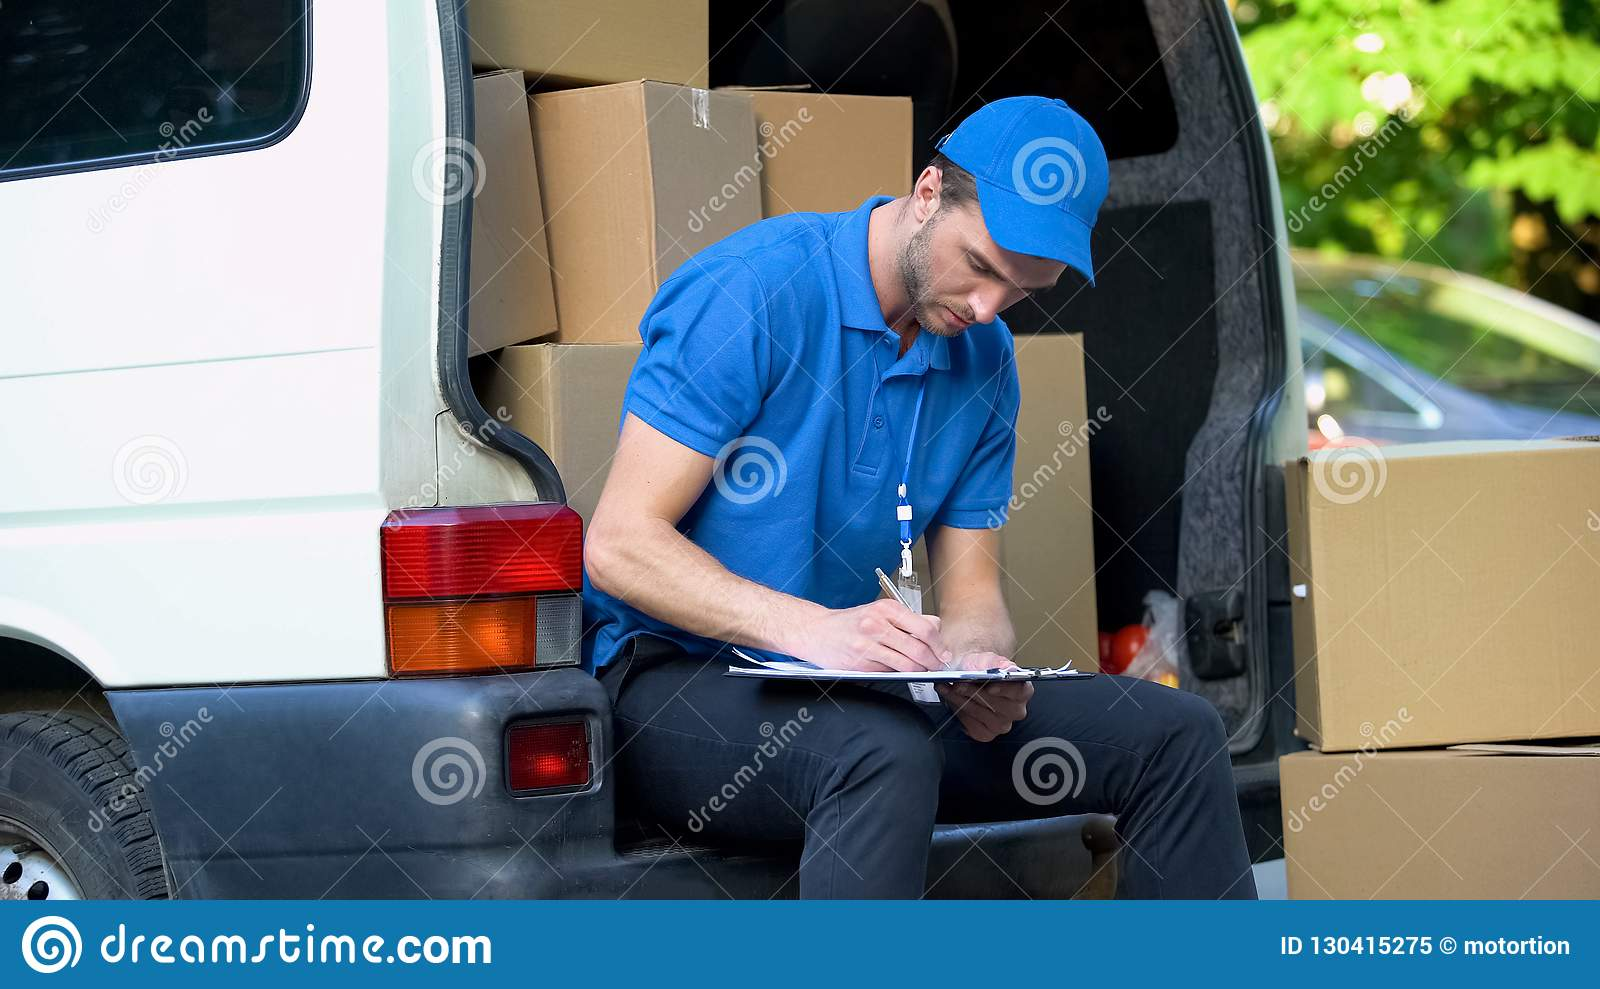 Delivery Man Stocktaking Checklist With Amount Of Parcels Part Time